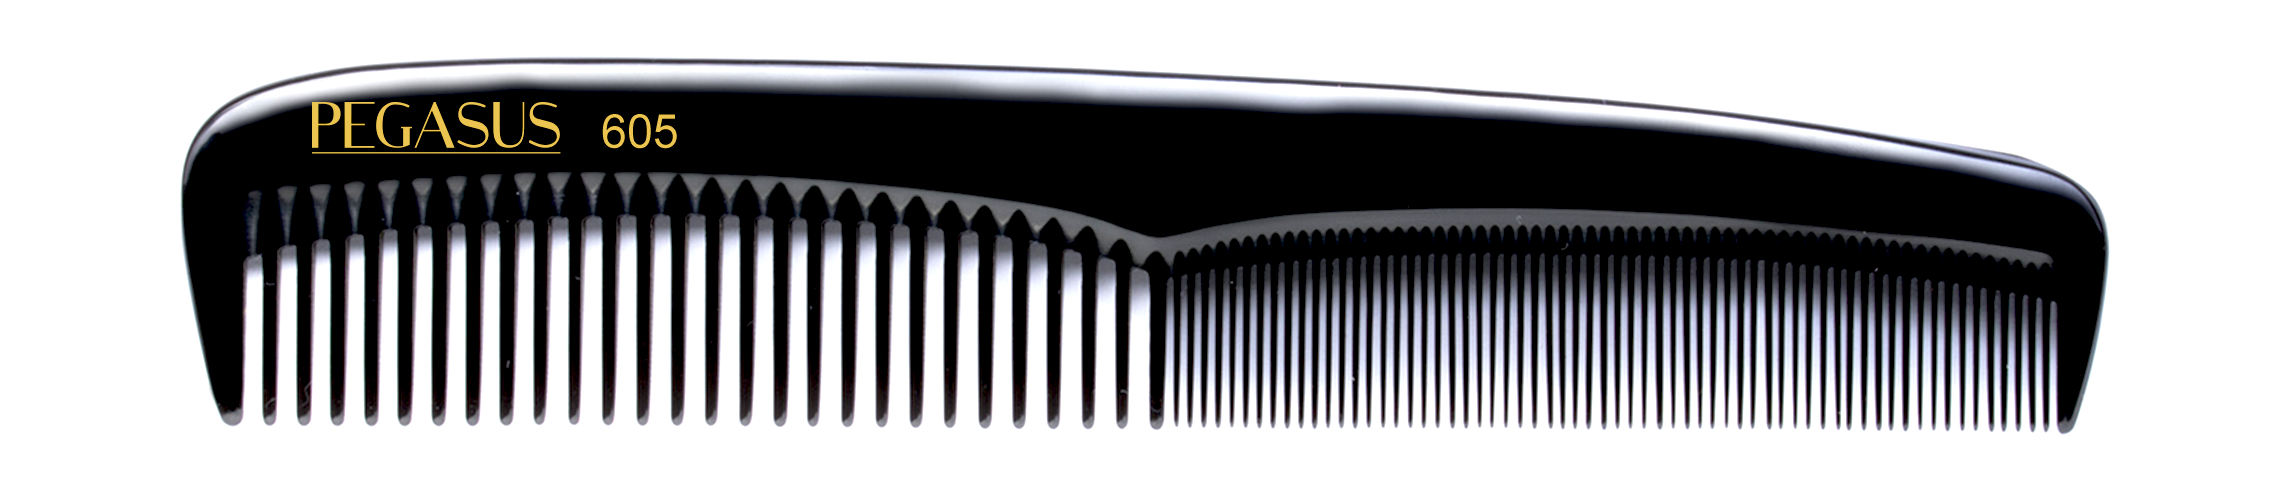 No. 605 Pegasus Hard Rubber Combs - Krest Combs